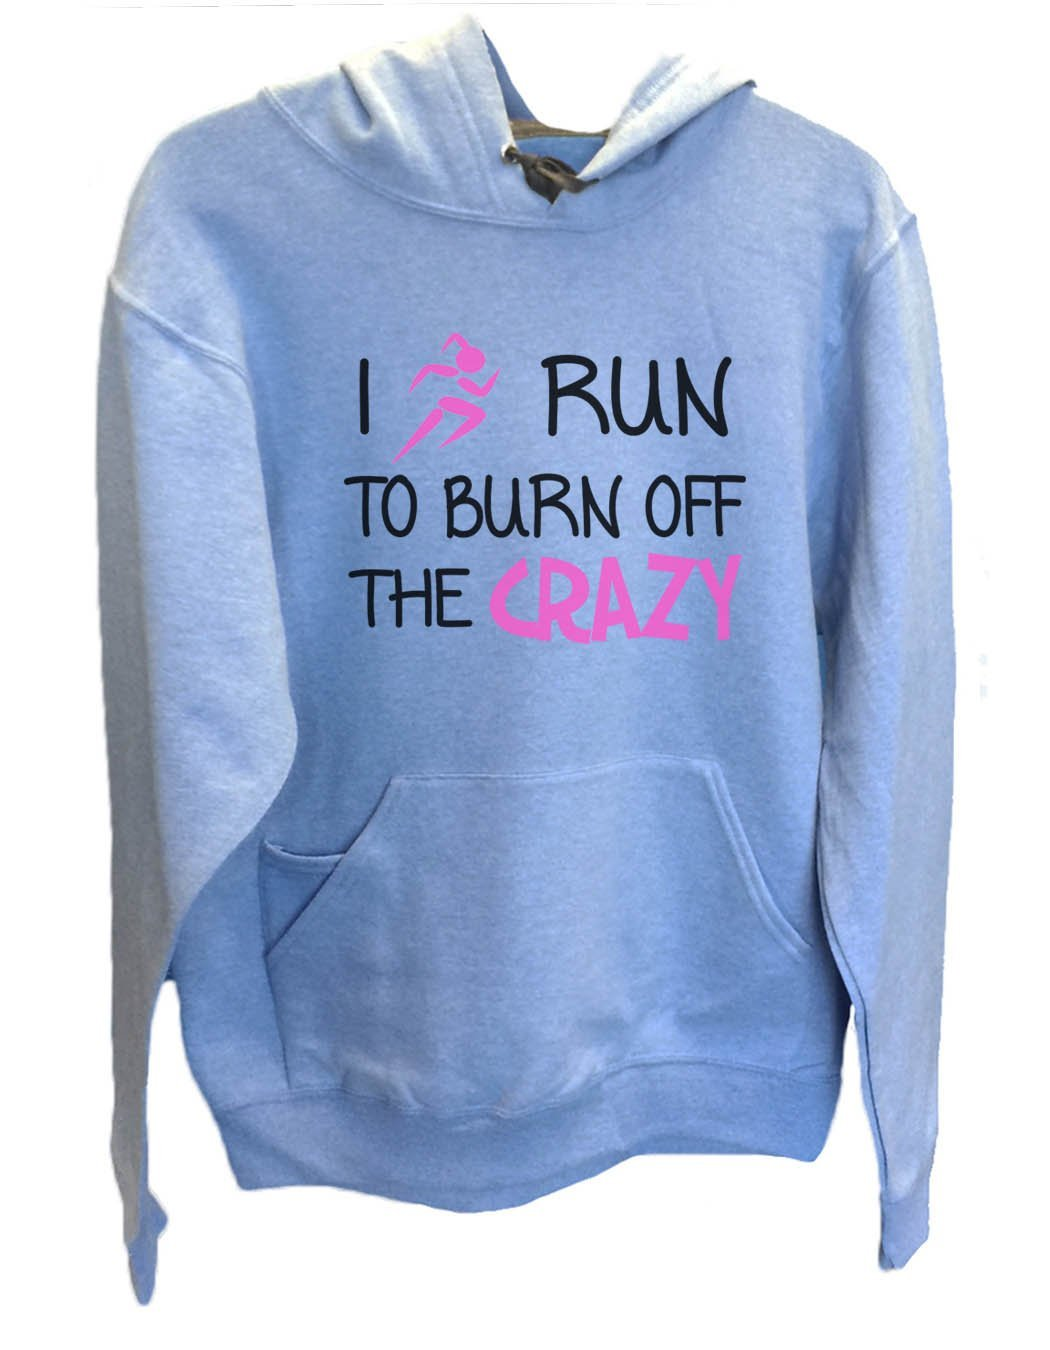 UNISEX HOODIE - I run to burn off the crazy - FUNNY MENS AND WOMENS HOODED SWEATSHIRTS - 532 Funny Shirt Small / North Carolina Blue